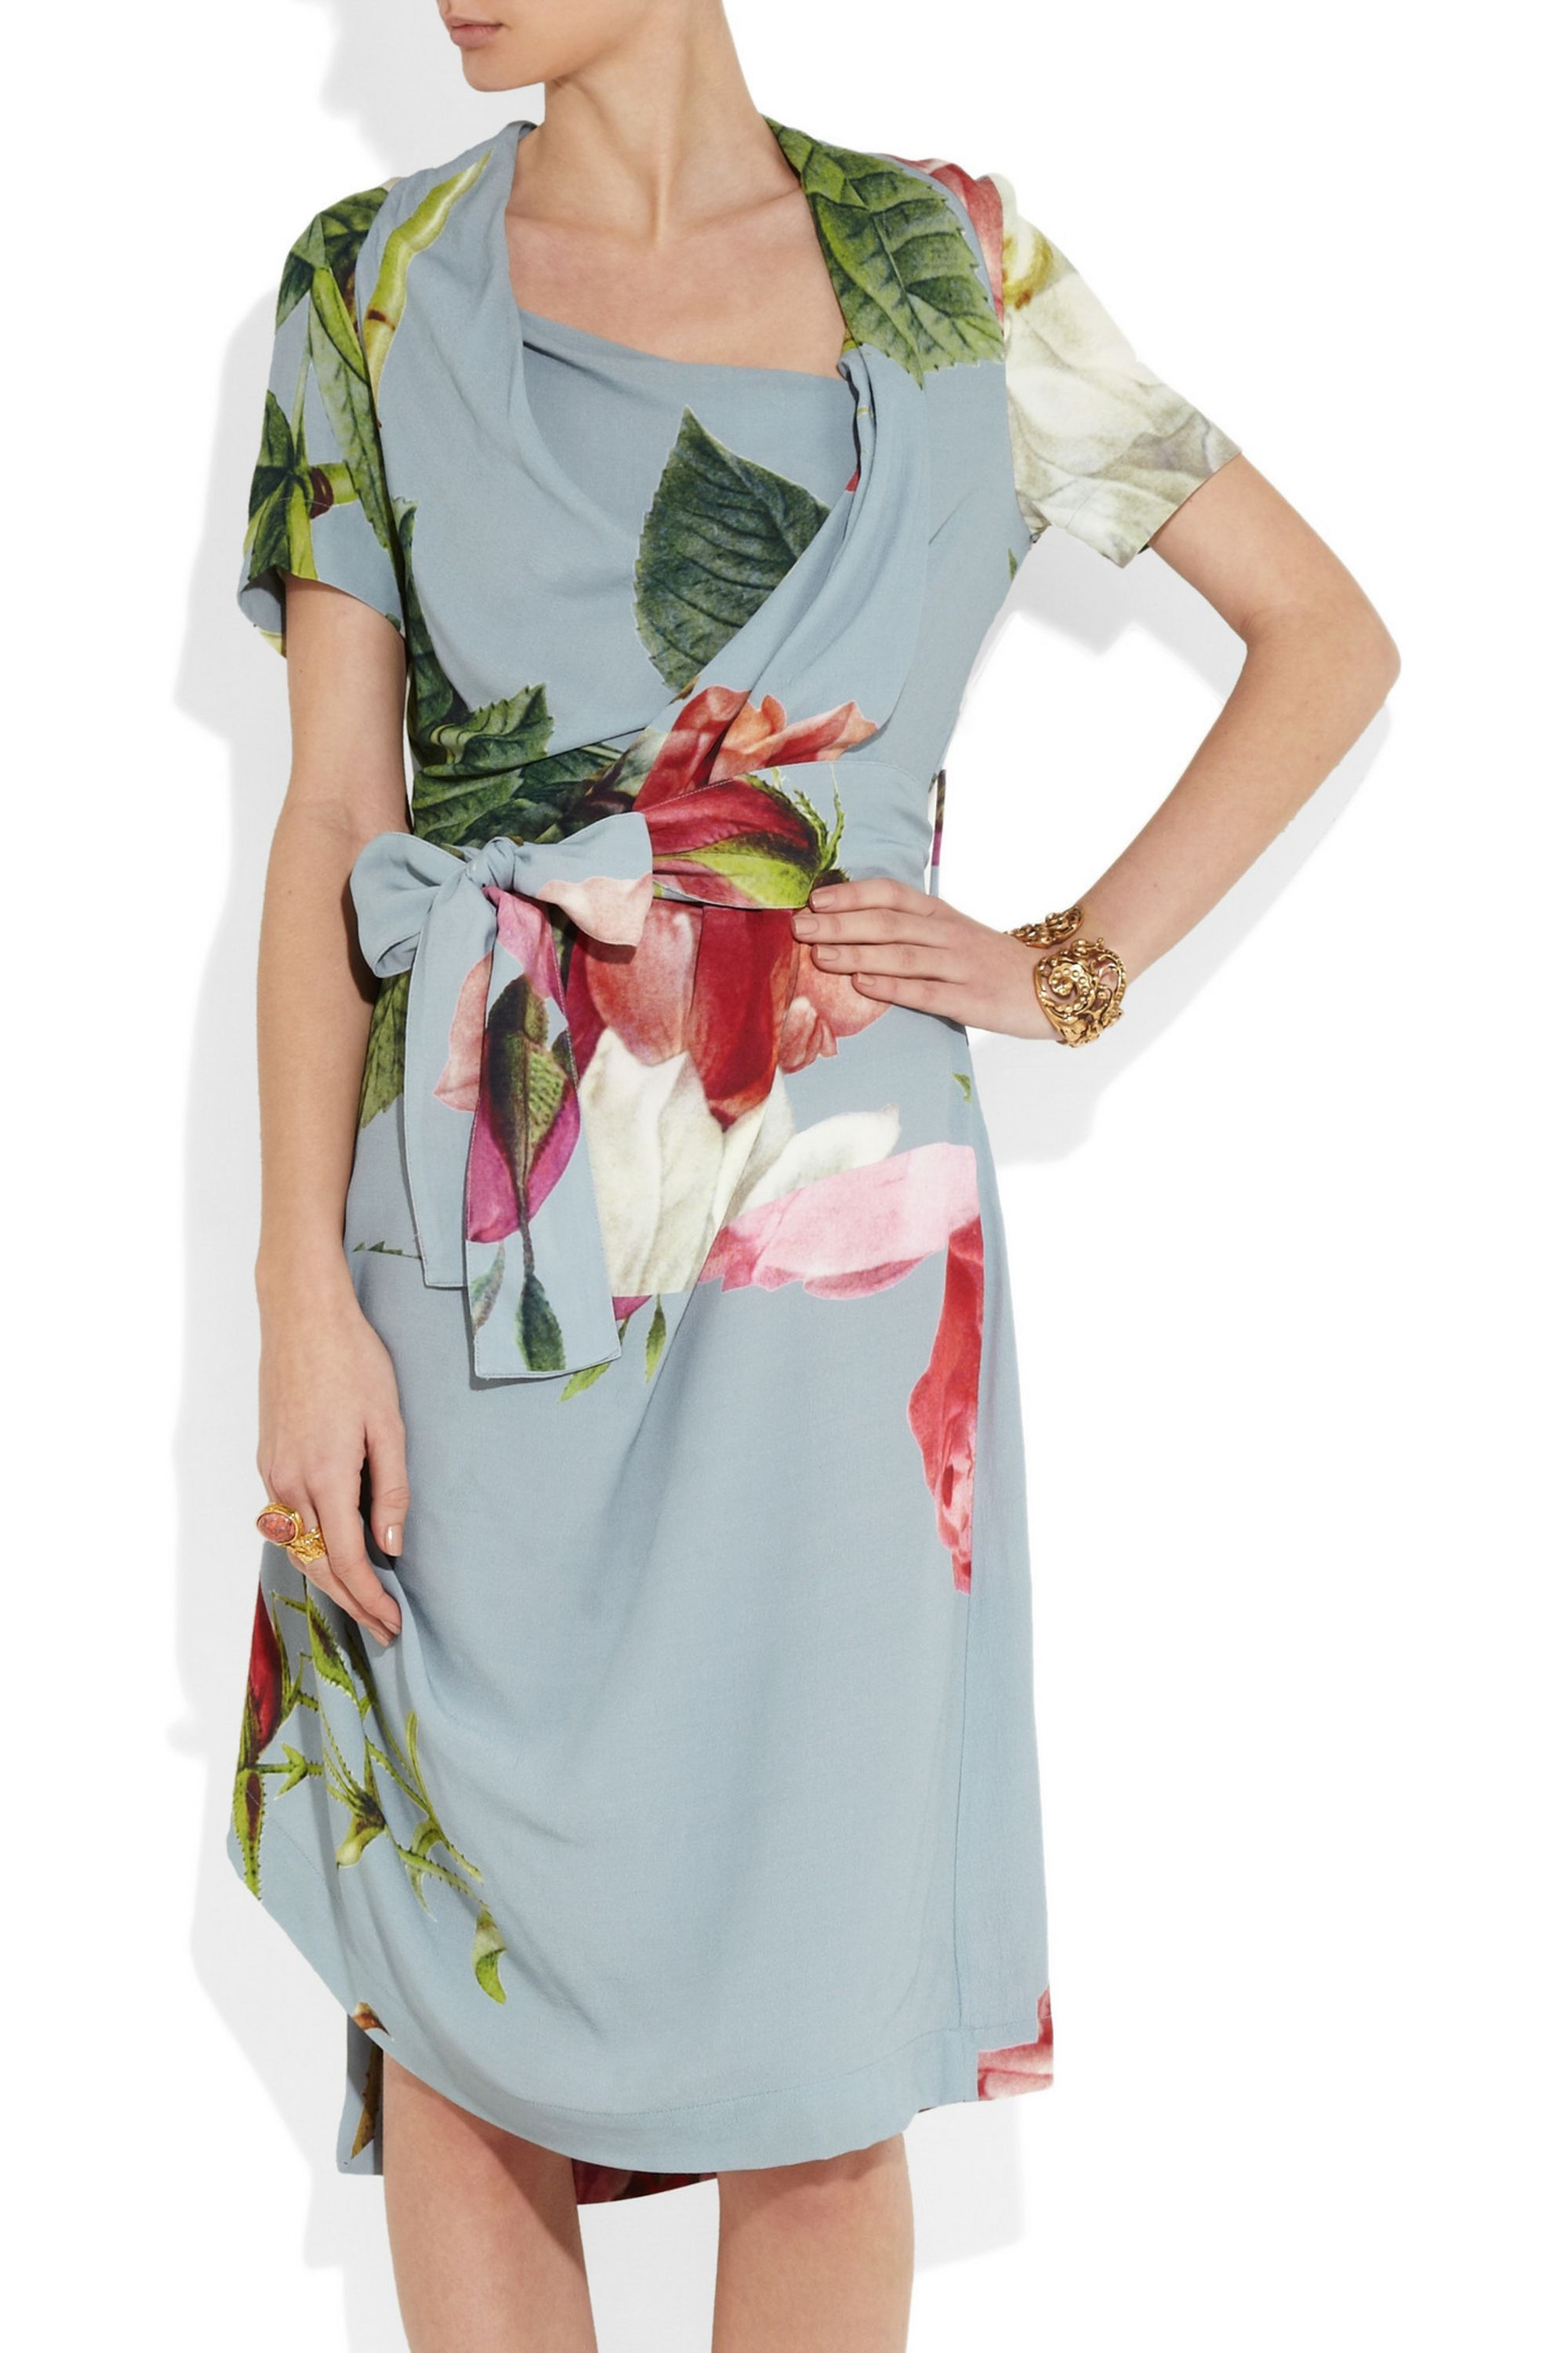 Vivienne Westwood Anglomania Daisy floral-print crepe dress